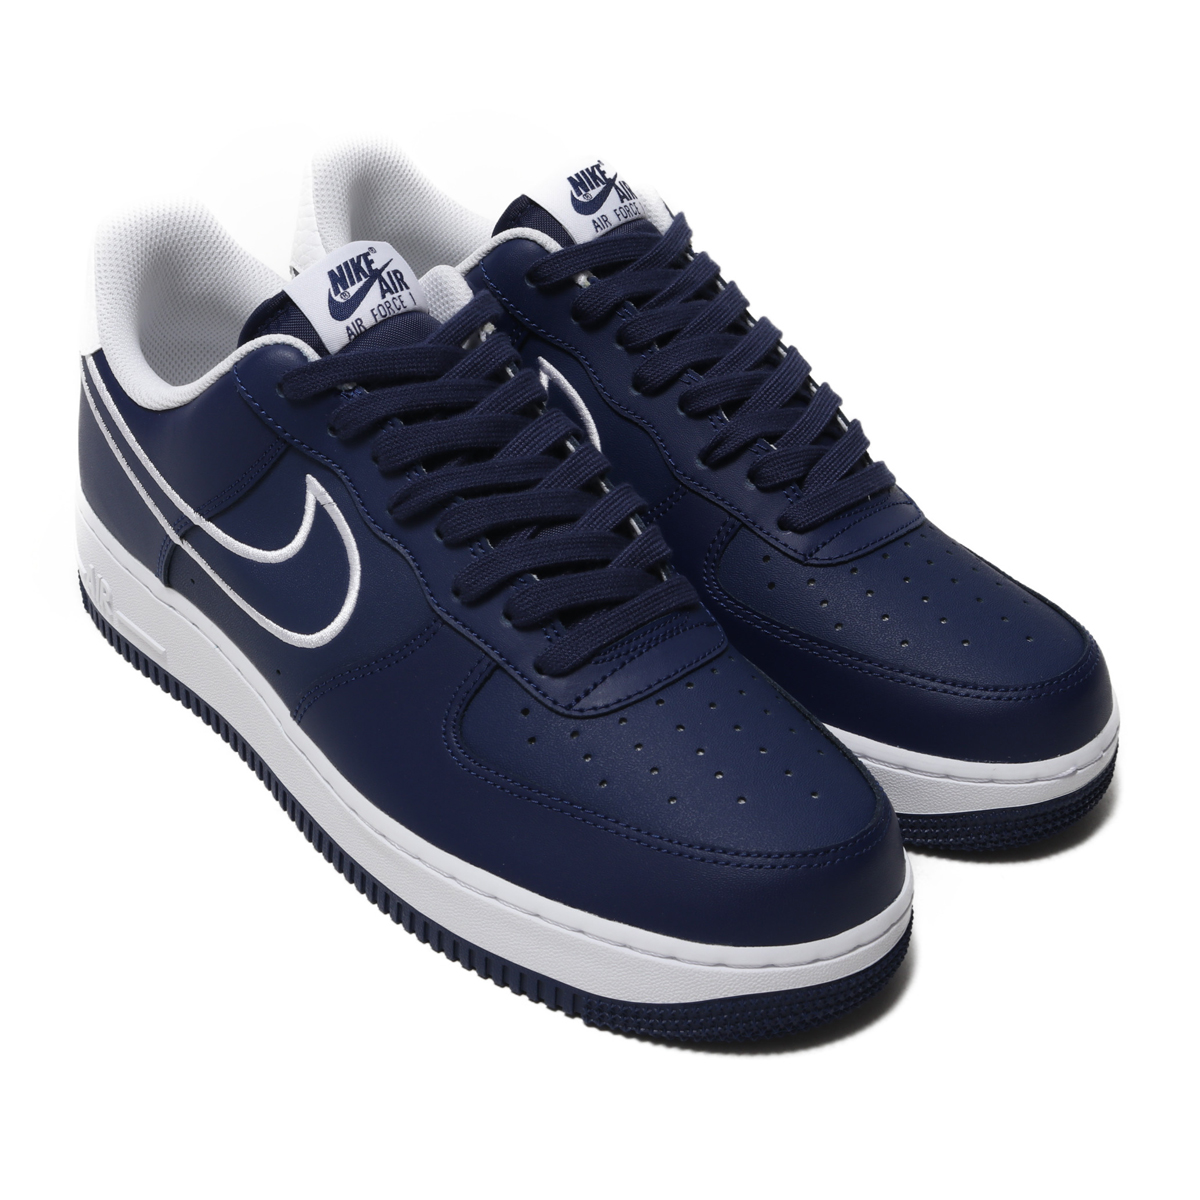 NIKE AIR FORCE 1 '07 LTHR (Nike air force 1 07 LTHR) BLUE VOID/WHITE 18FA-I